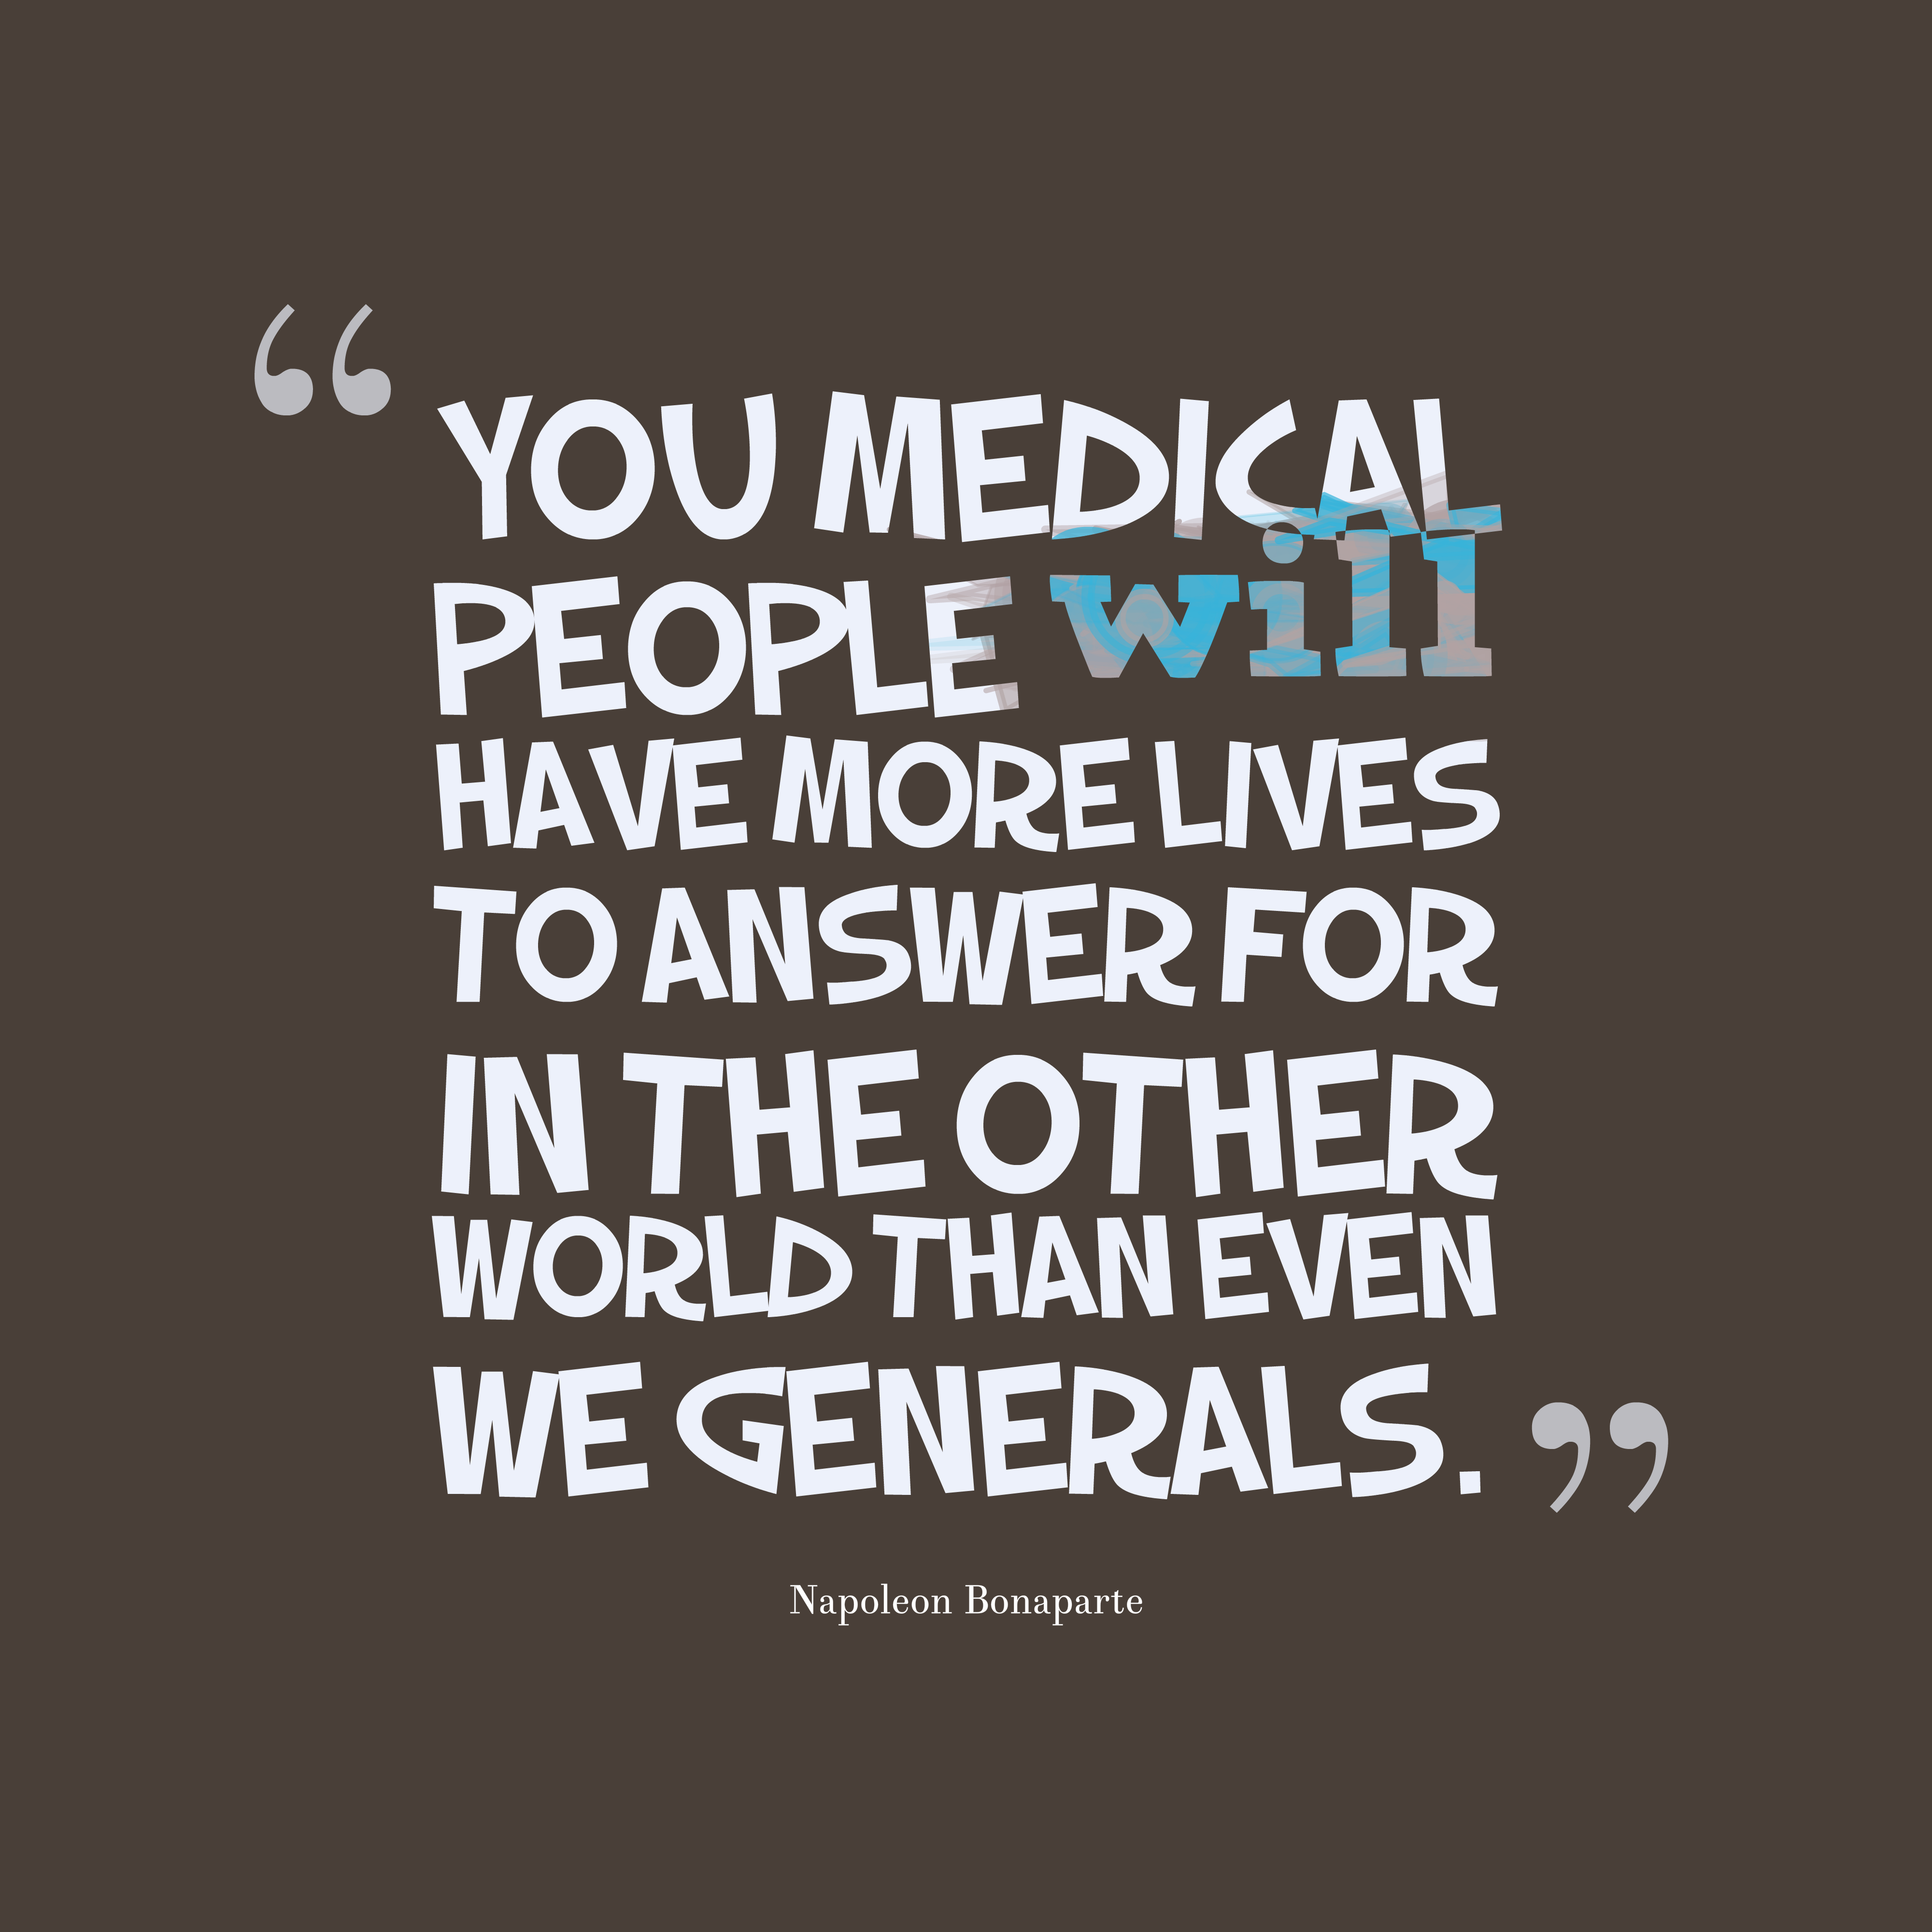 Medical Quotes | Napoleon Bonaparte Quote About Medicine